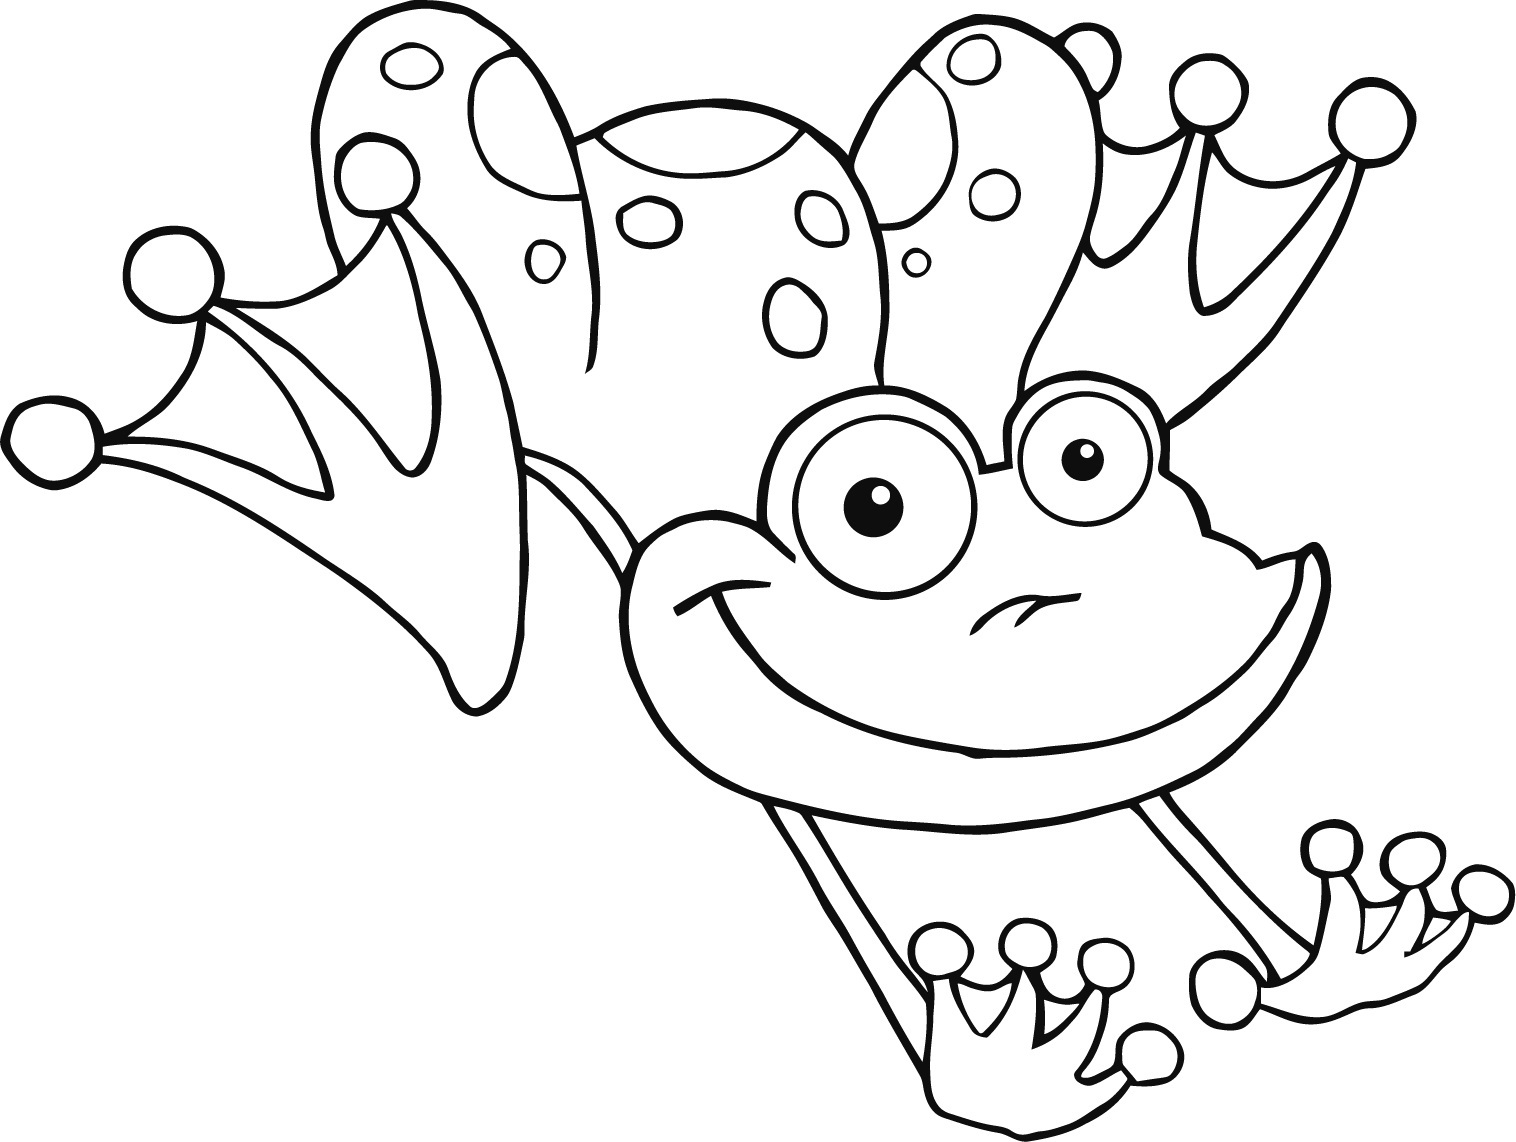 frog coloring sheets print frog - Steelers Coloring Pages Printable